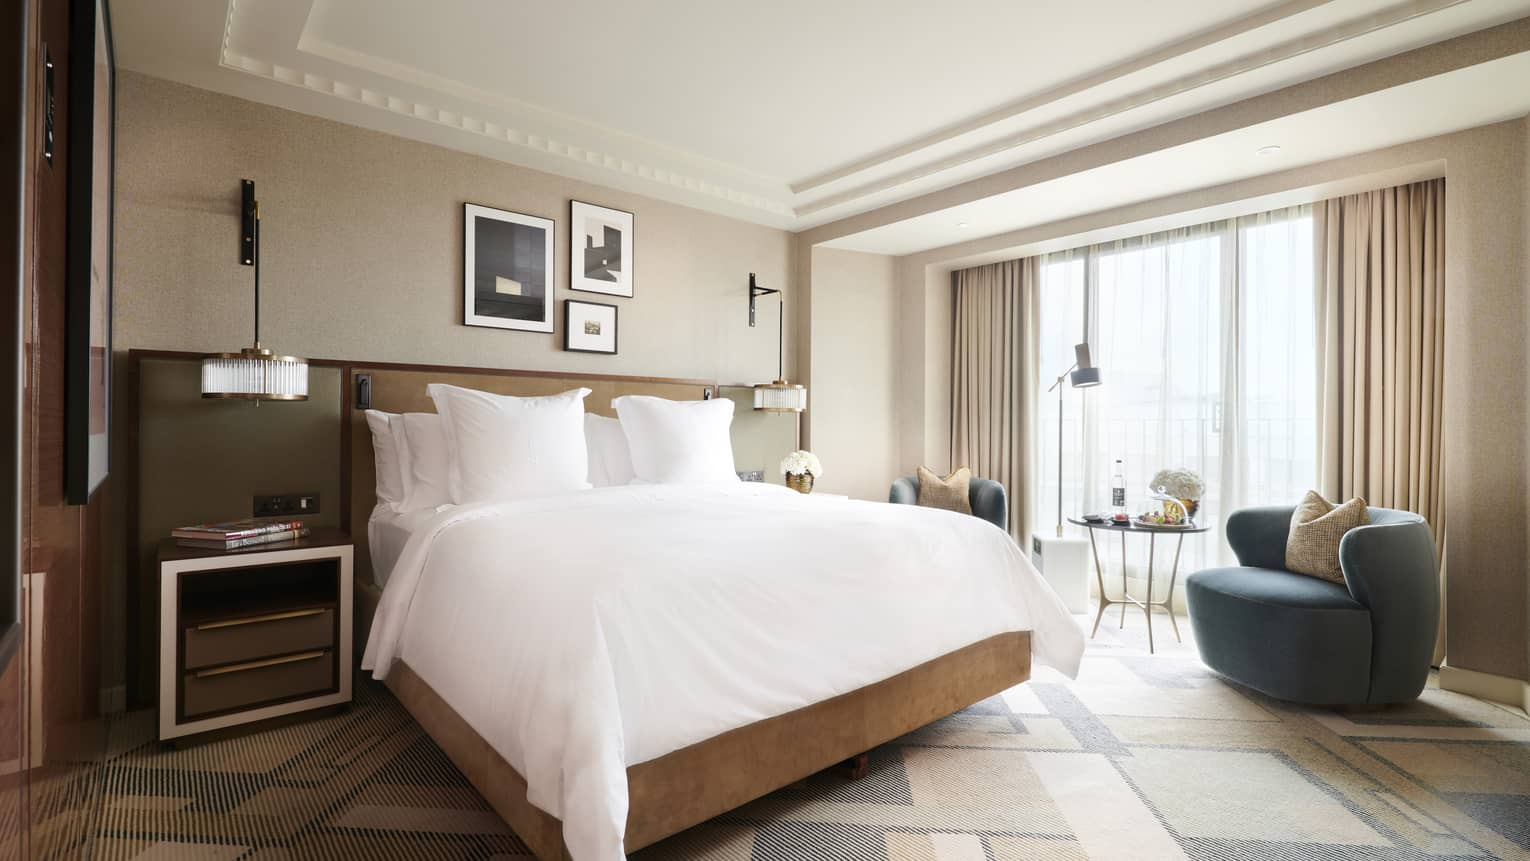 Floor to ceiling windows let natural light into the Deluxe King Room, furnished with a modern king bed, a modern egg-shaped blue chair and side table